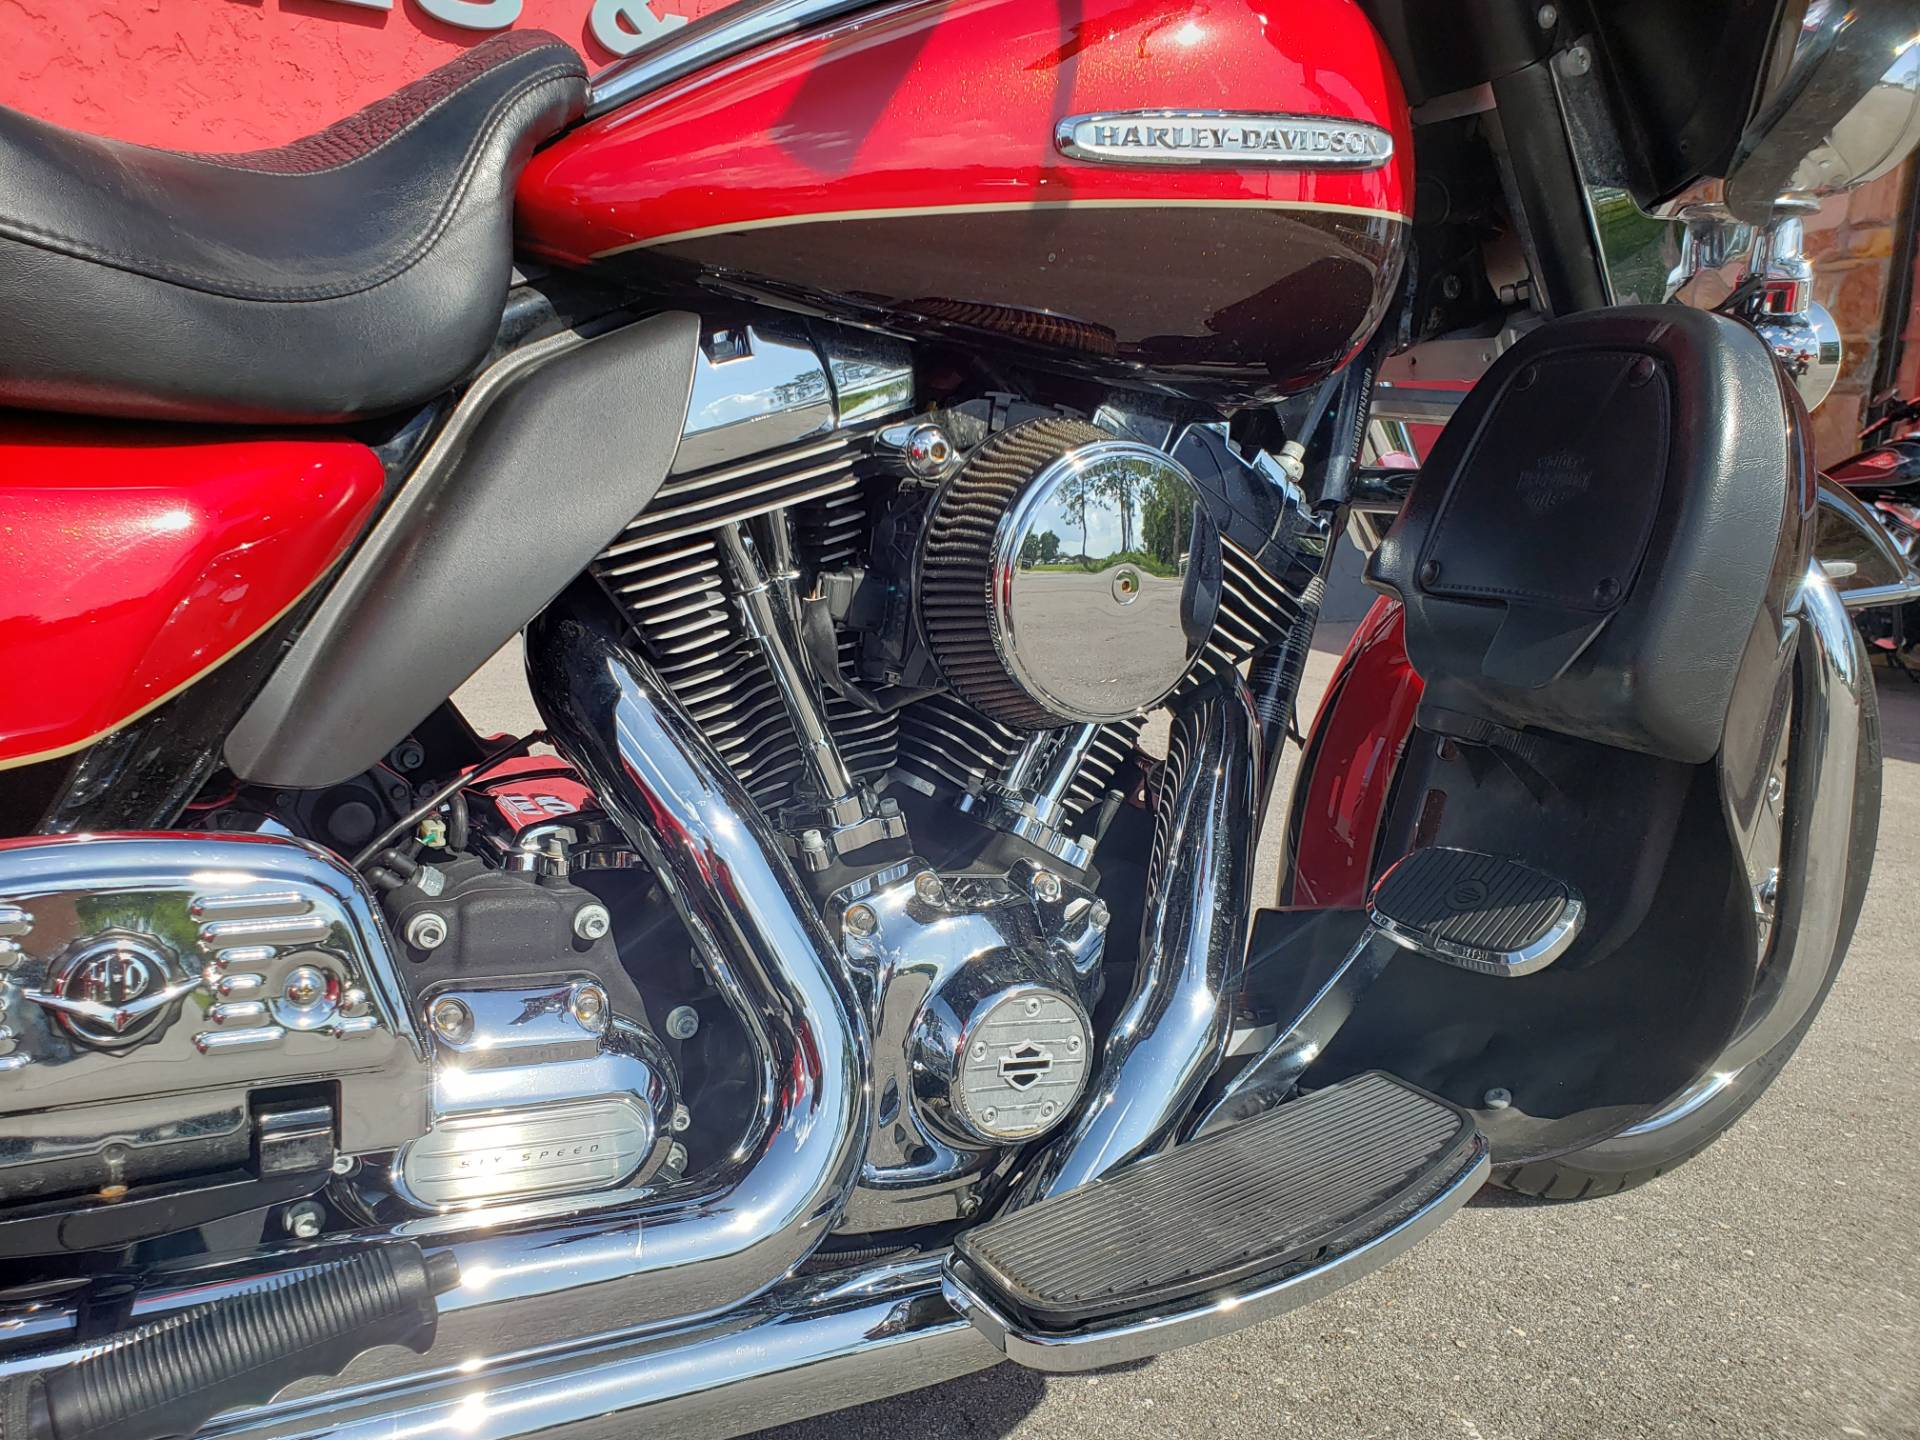 2011 Harley-Davidson ULTRA CLASSIC LIMITED in Fort Myers, Florida - Photo 8